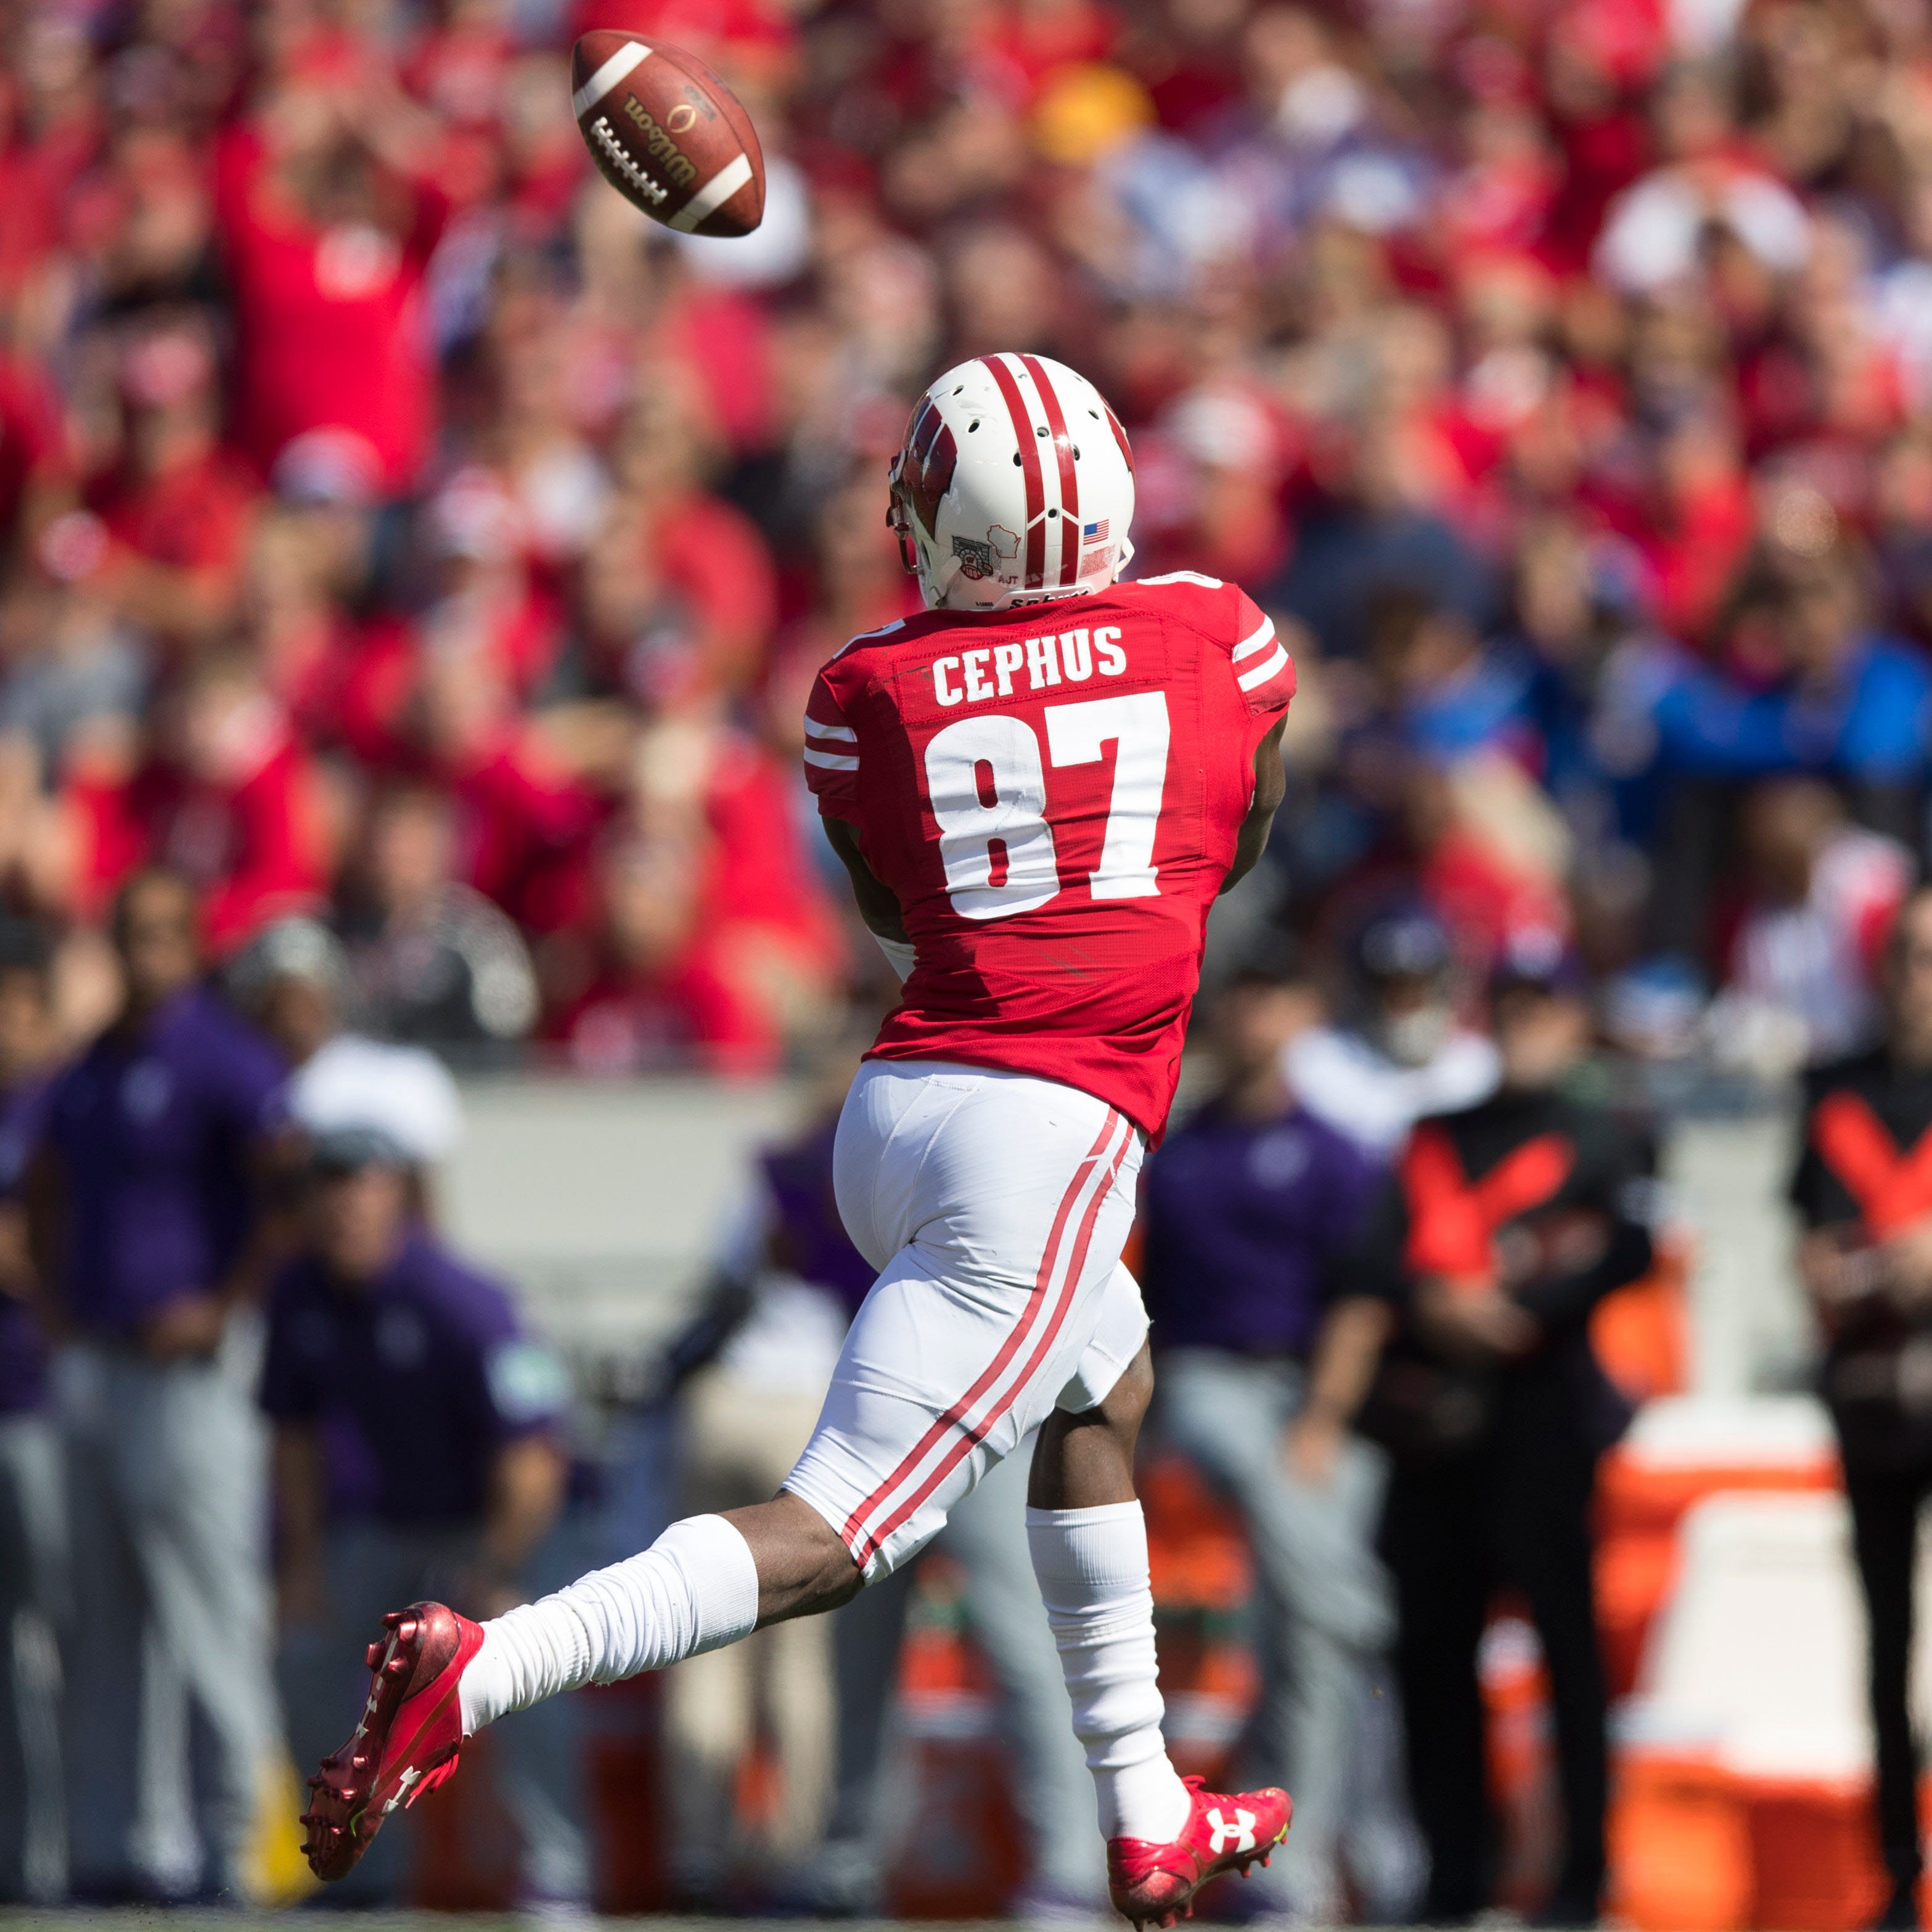 Badgers moving on without Quintez Cephus, as they did for the final five games in '17